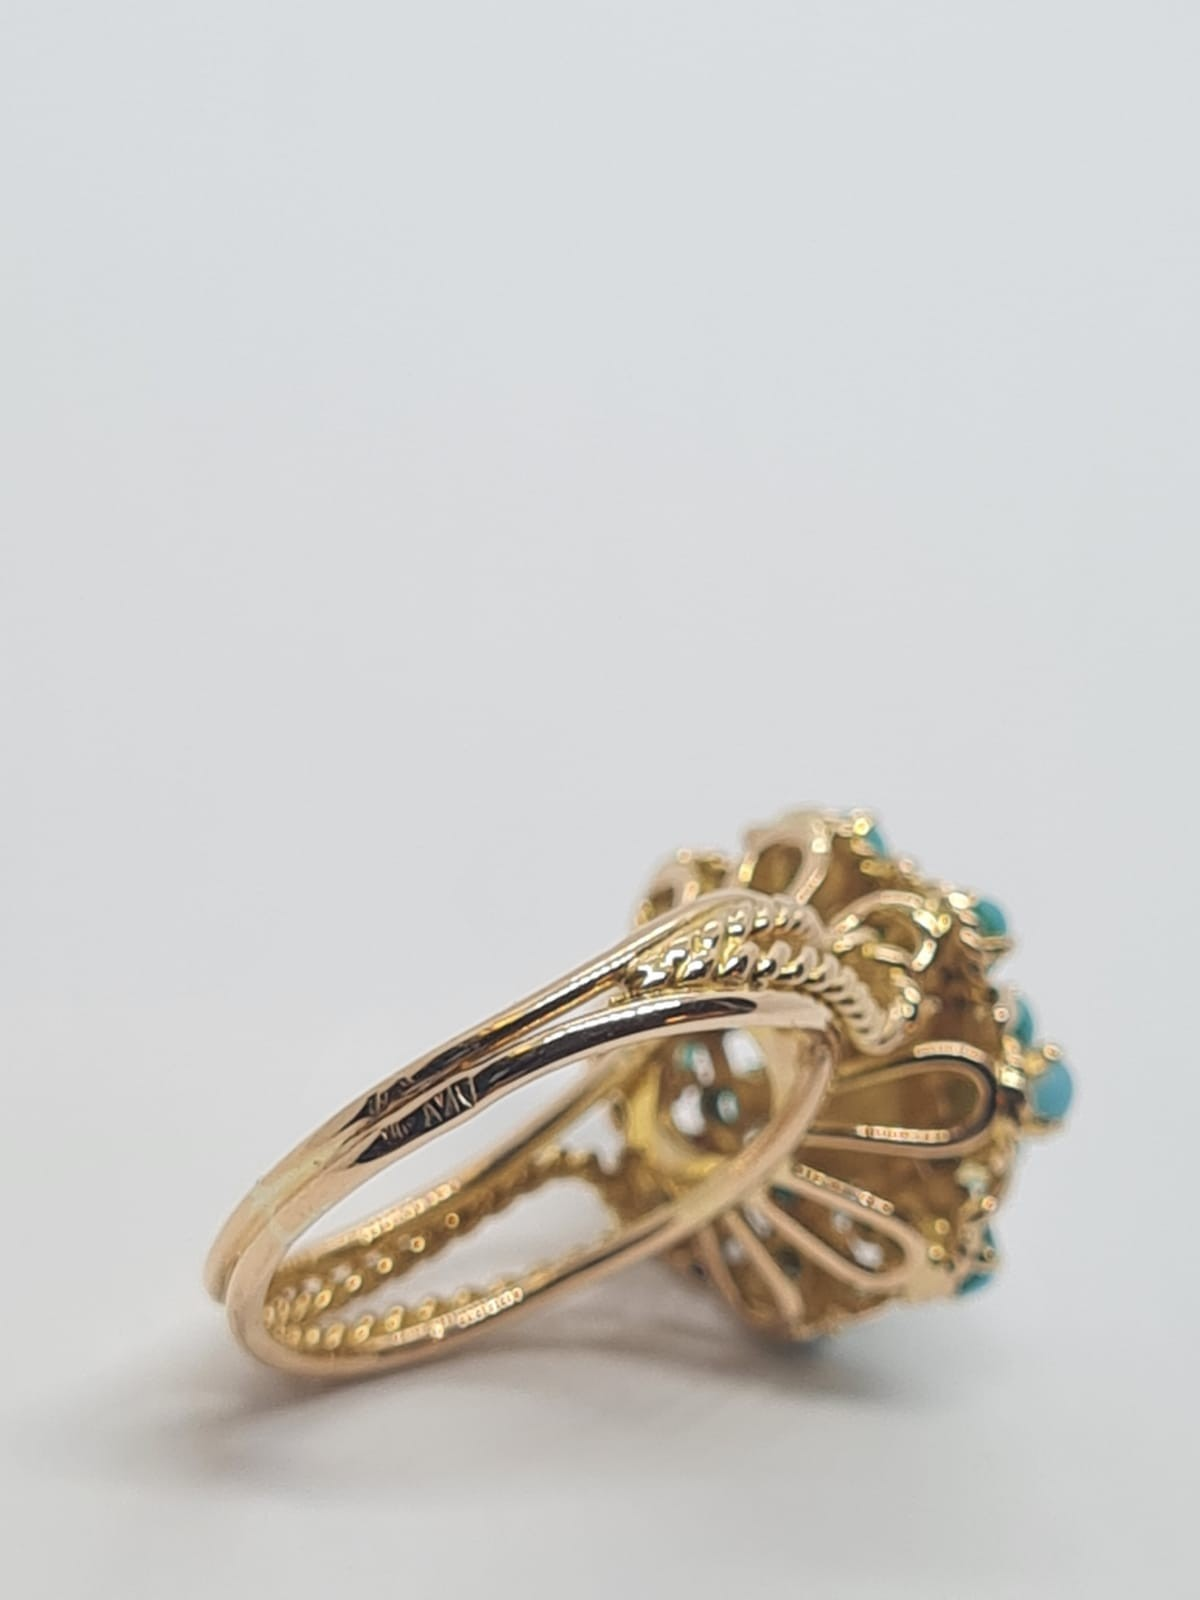 18k yellow gold TURQUISE AND PEARL CLUSTER RING, weight 5.3g and size J1/2 - Image 3 of 8